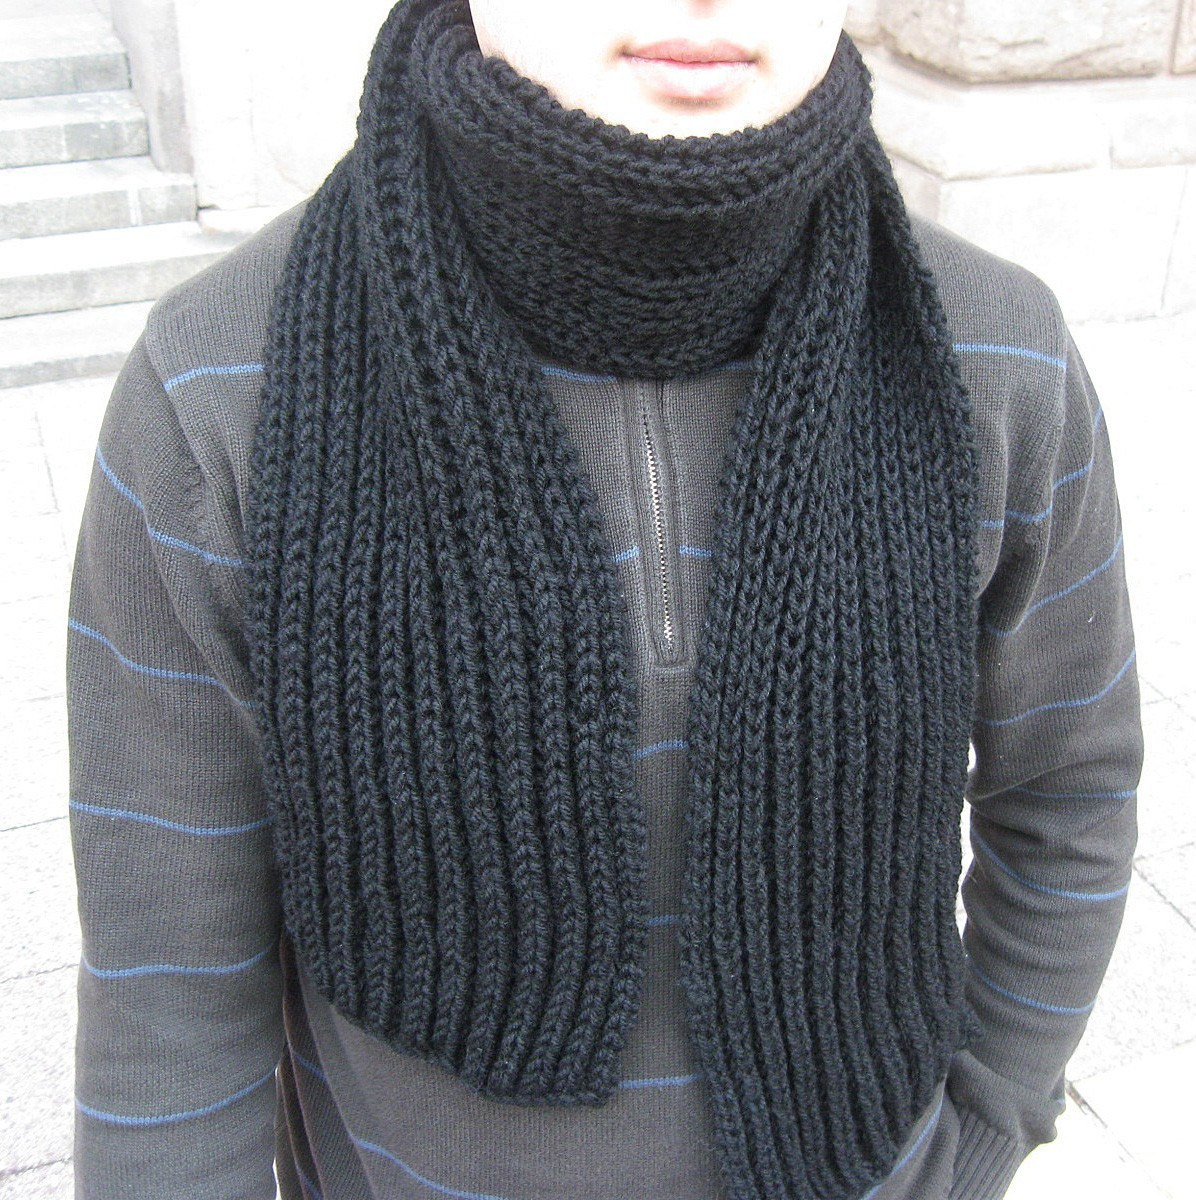 Hand Knit Scarf Pattern Hand Knitted Scarves For Sale On Week Of October